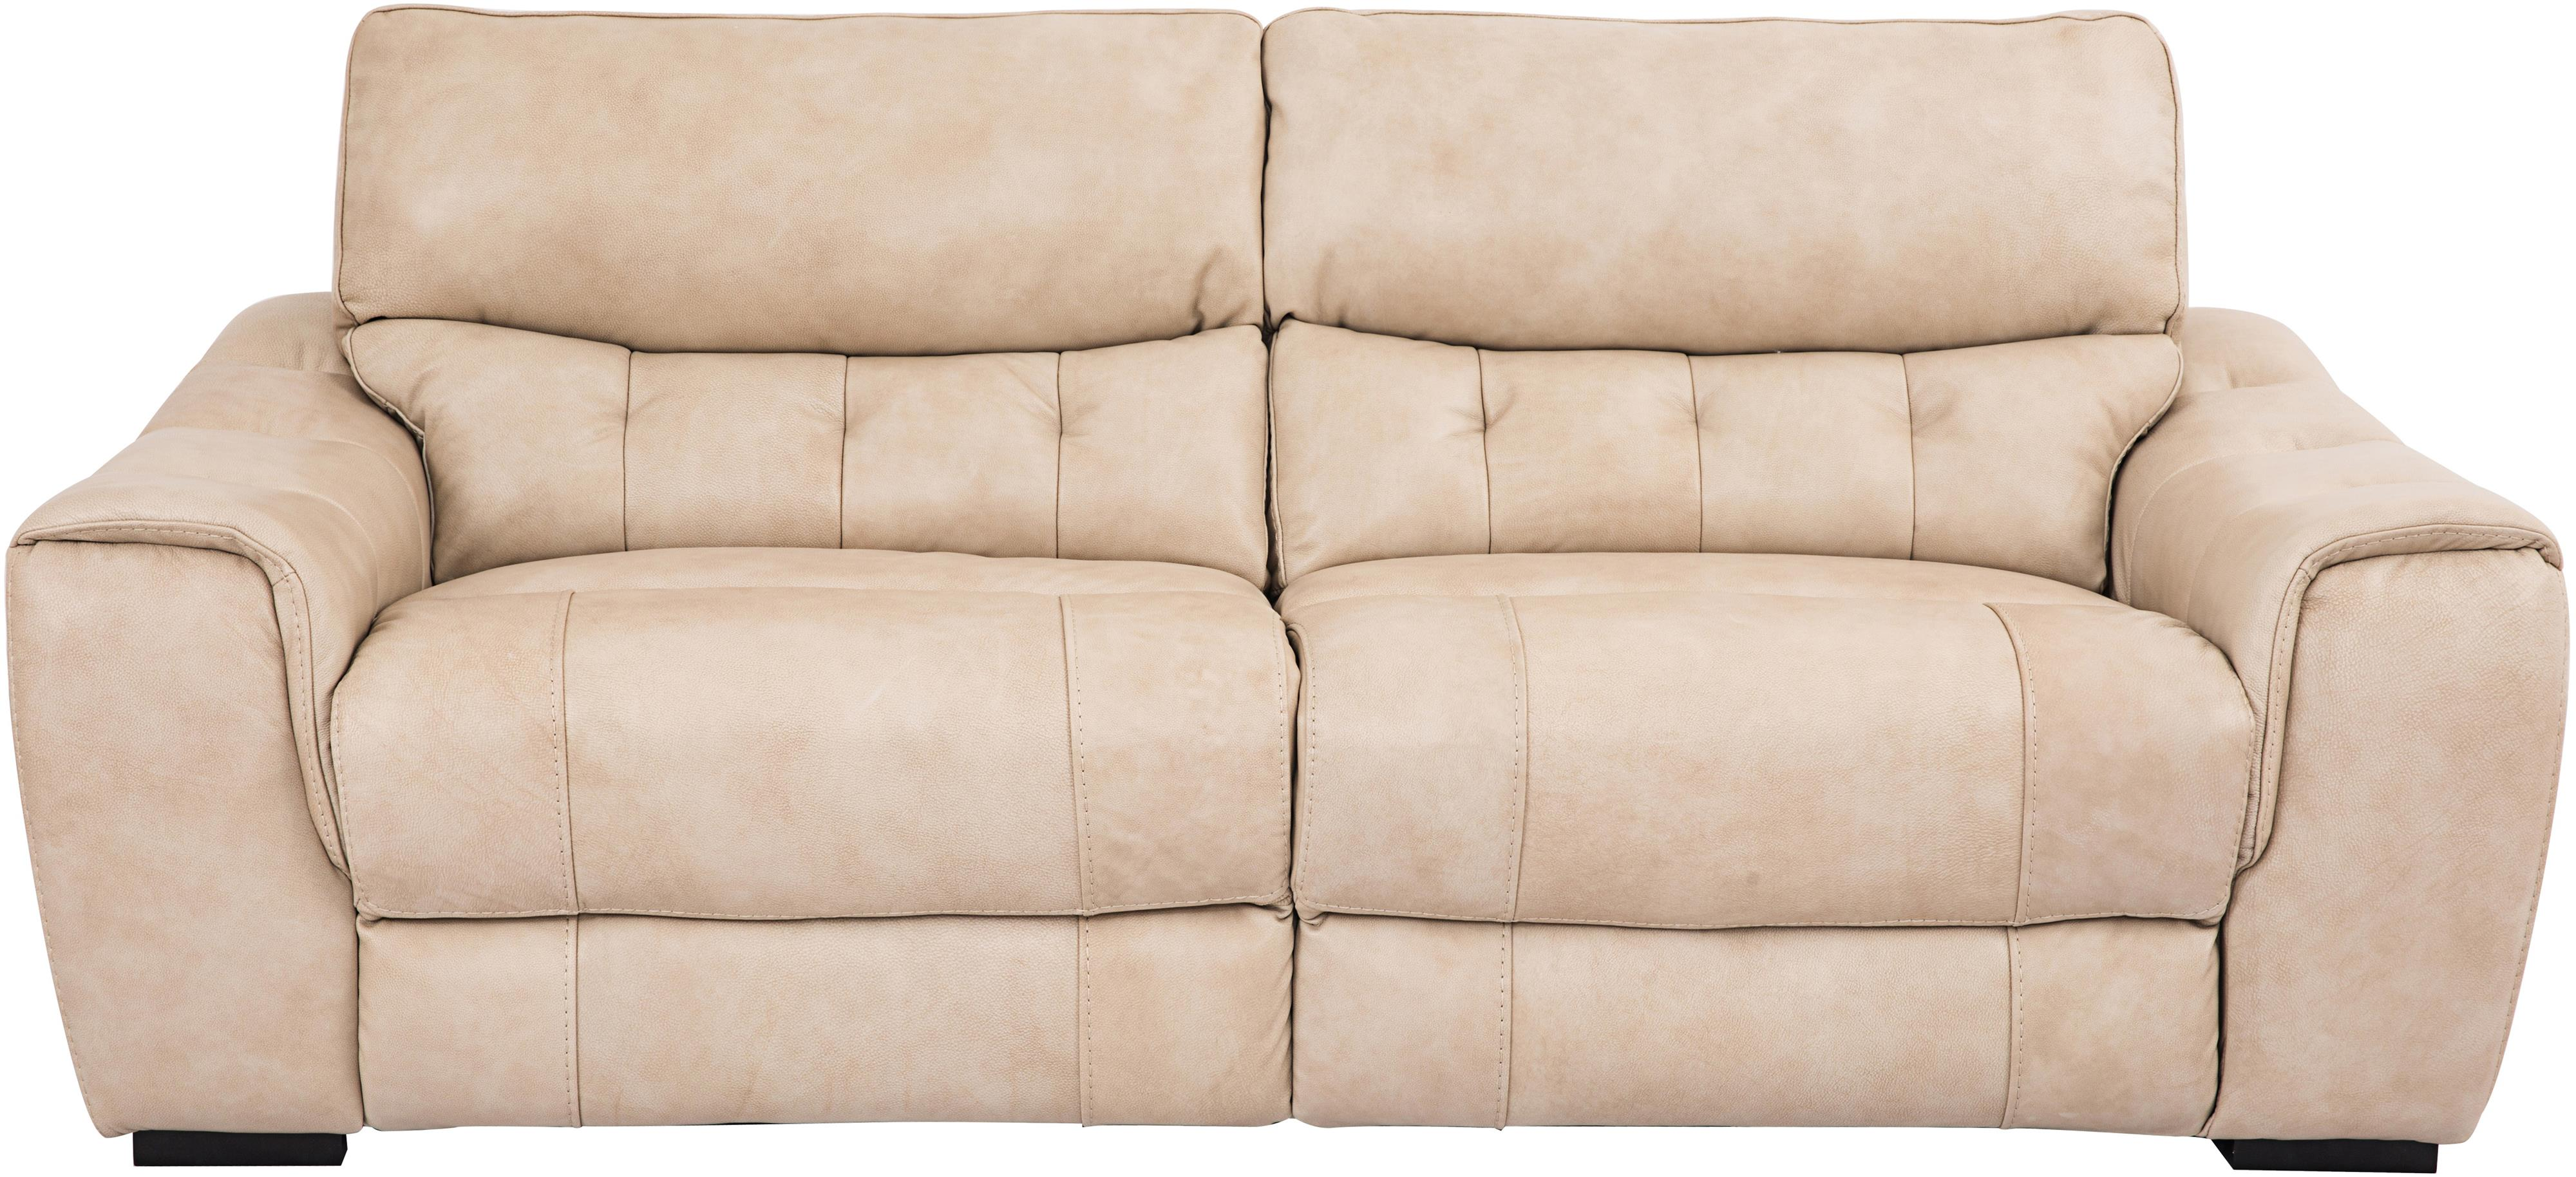 1005 Casual Sofa by Cheers at Lagniappe Home Store